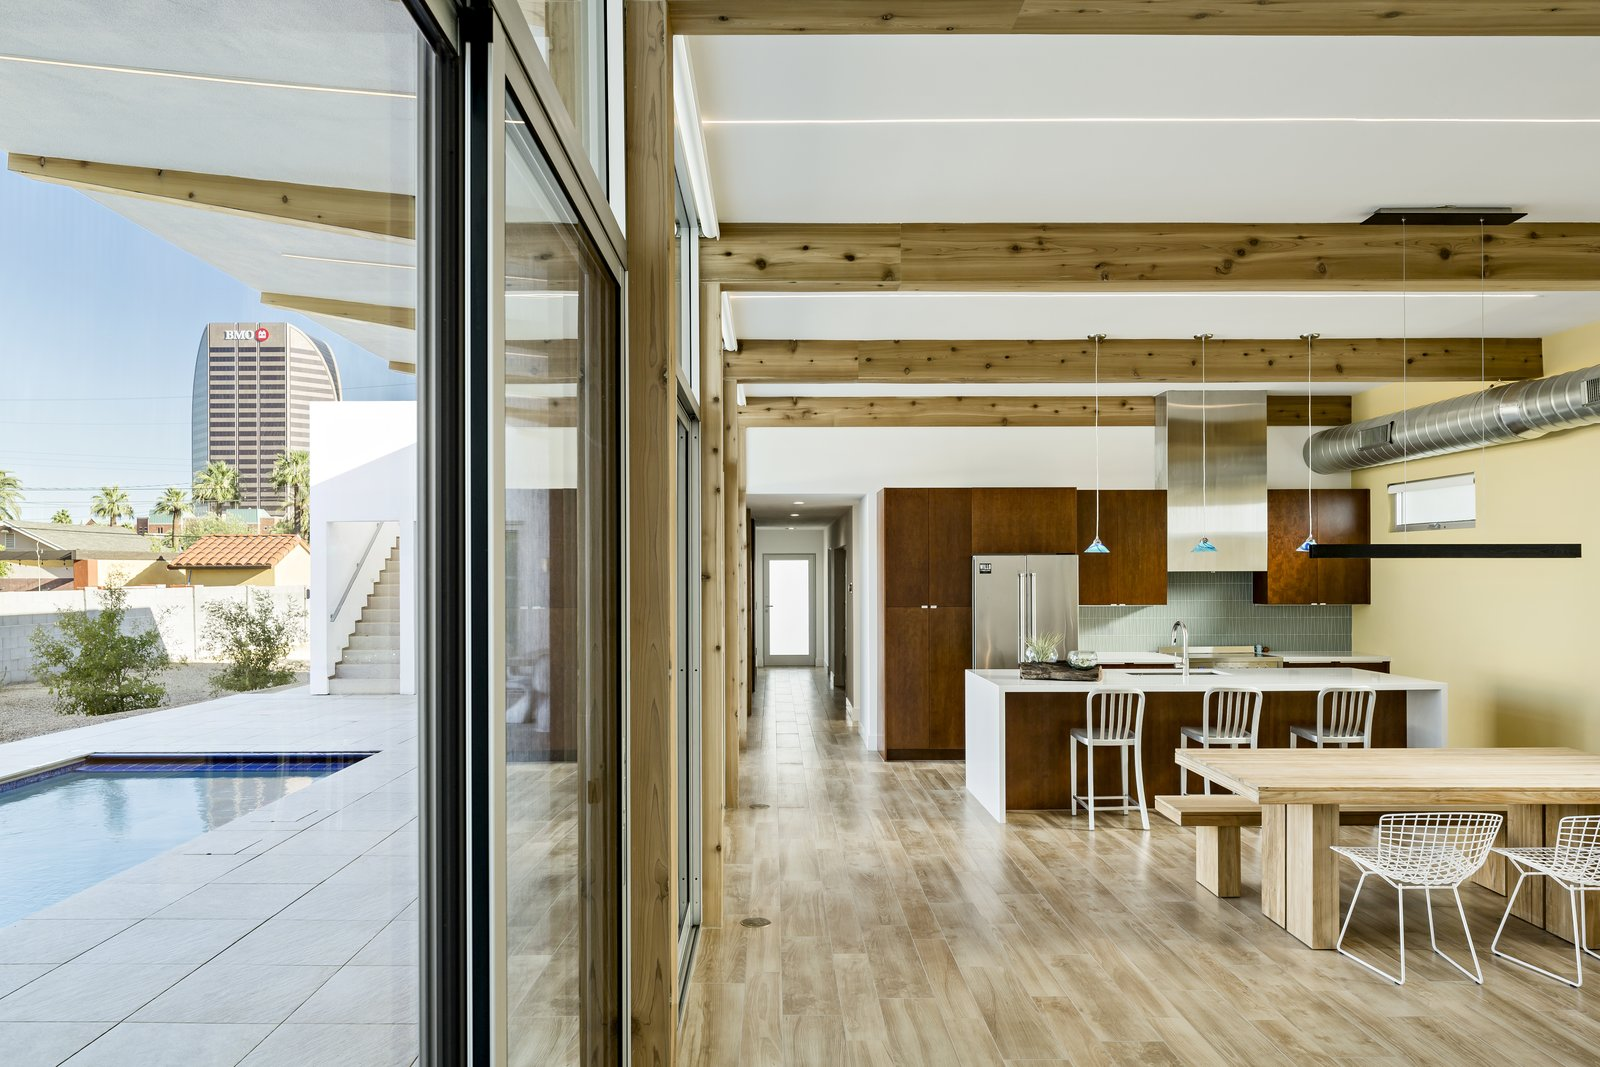 Dining Room, Ceiling Lighting, Table, Bench, Pendant Lighting, and Porcelain Tile Floor The wood beams flow from inside to outside and angle up to capture a view of the tallest tower in the area.  Sol House by The Ranch Mine